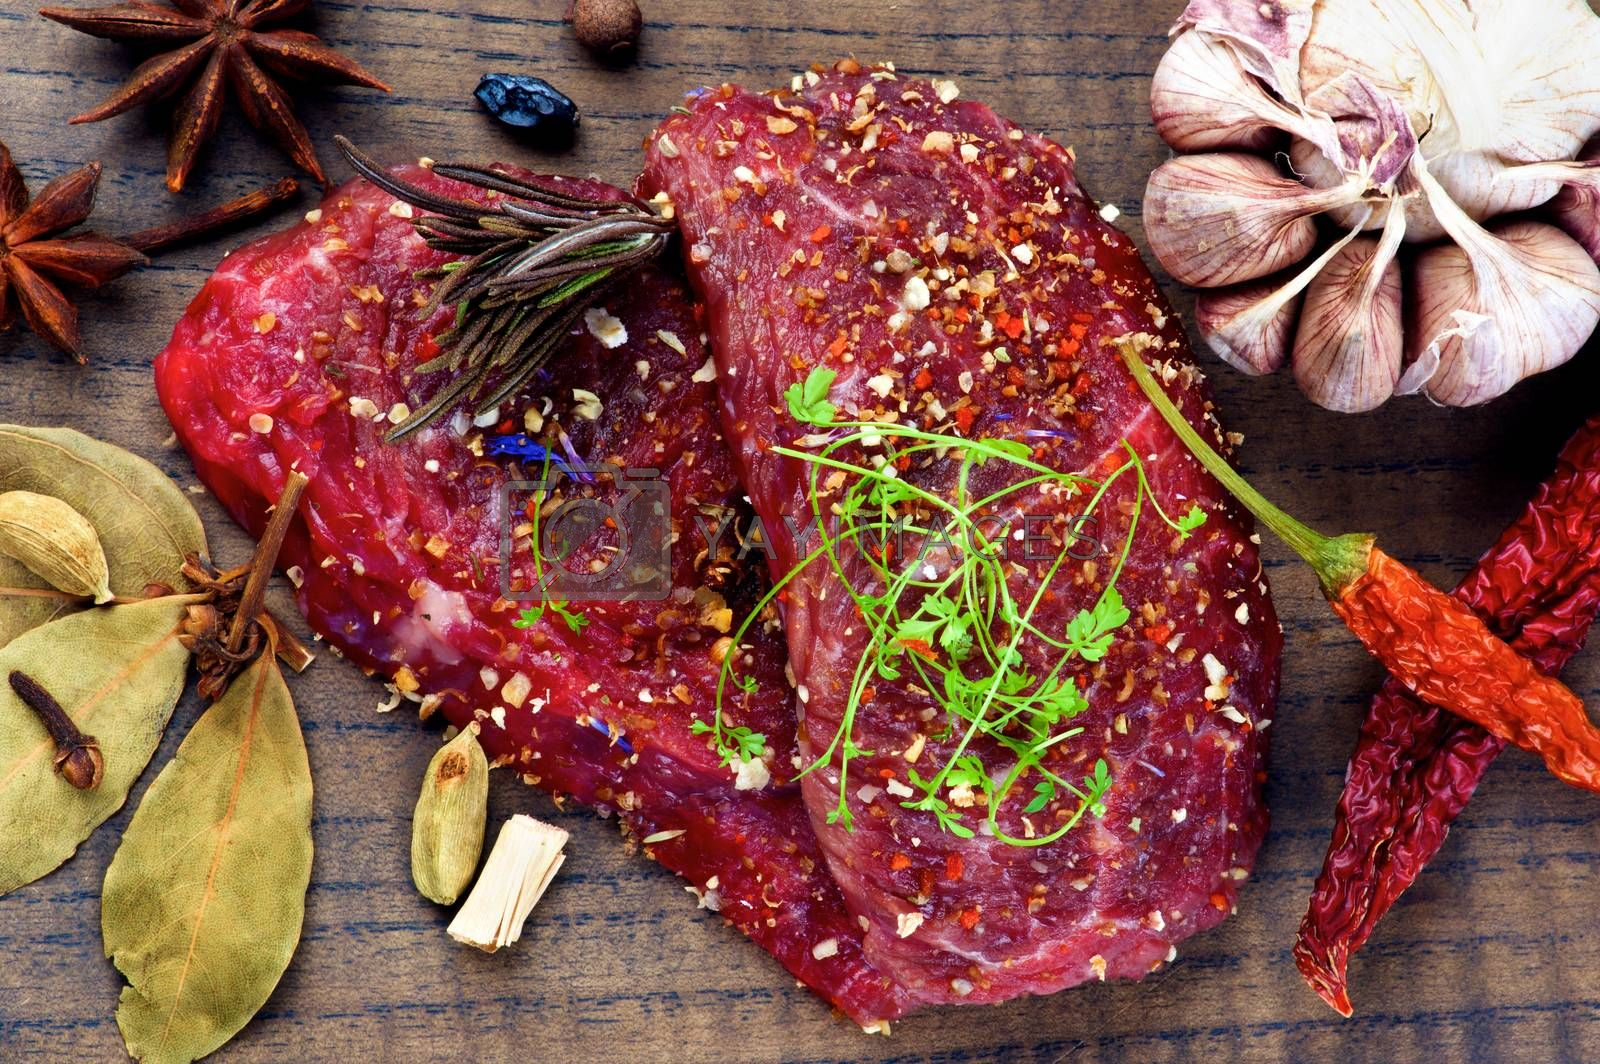 Two Marinated Raw Boneless Beef Steaks with Herbs and Spices, Garlic and Chili Pepper closeup on Wooden Cutting Board. Top View